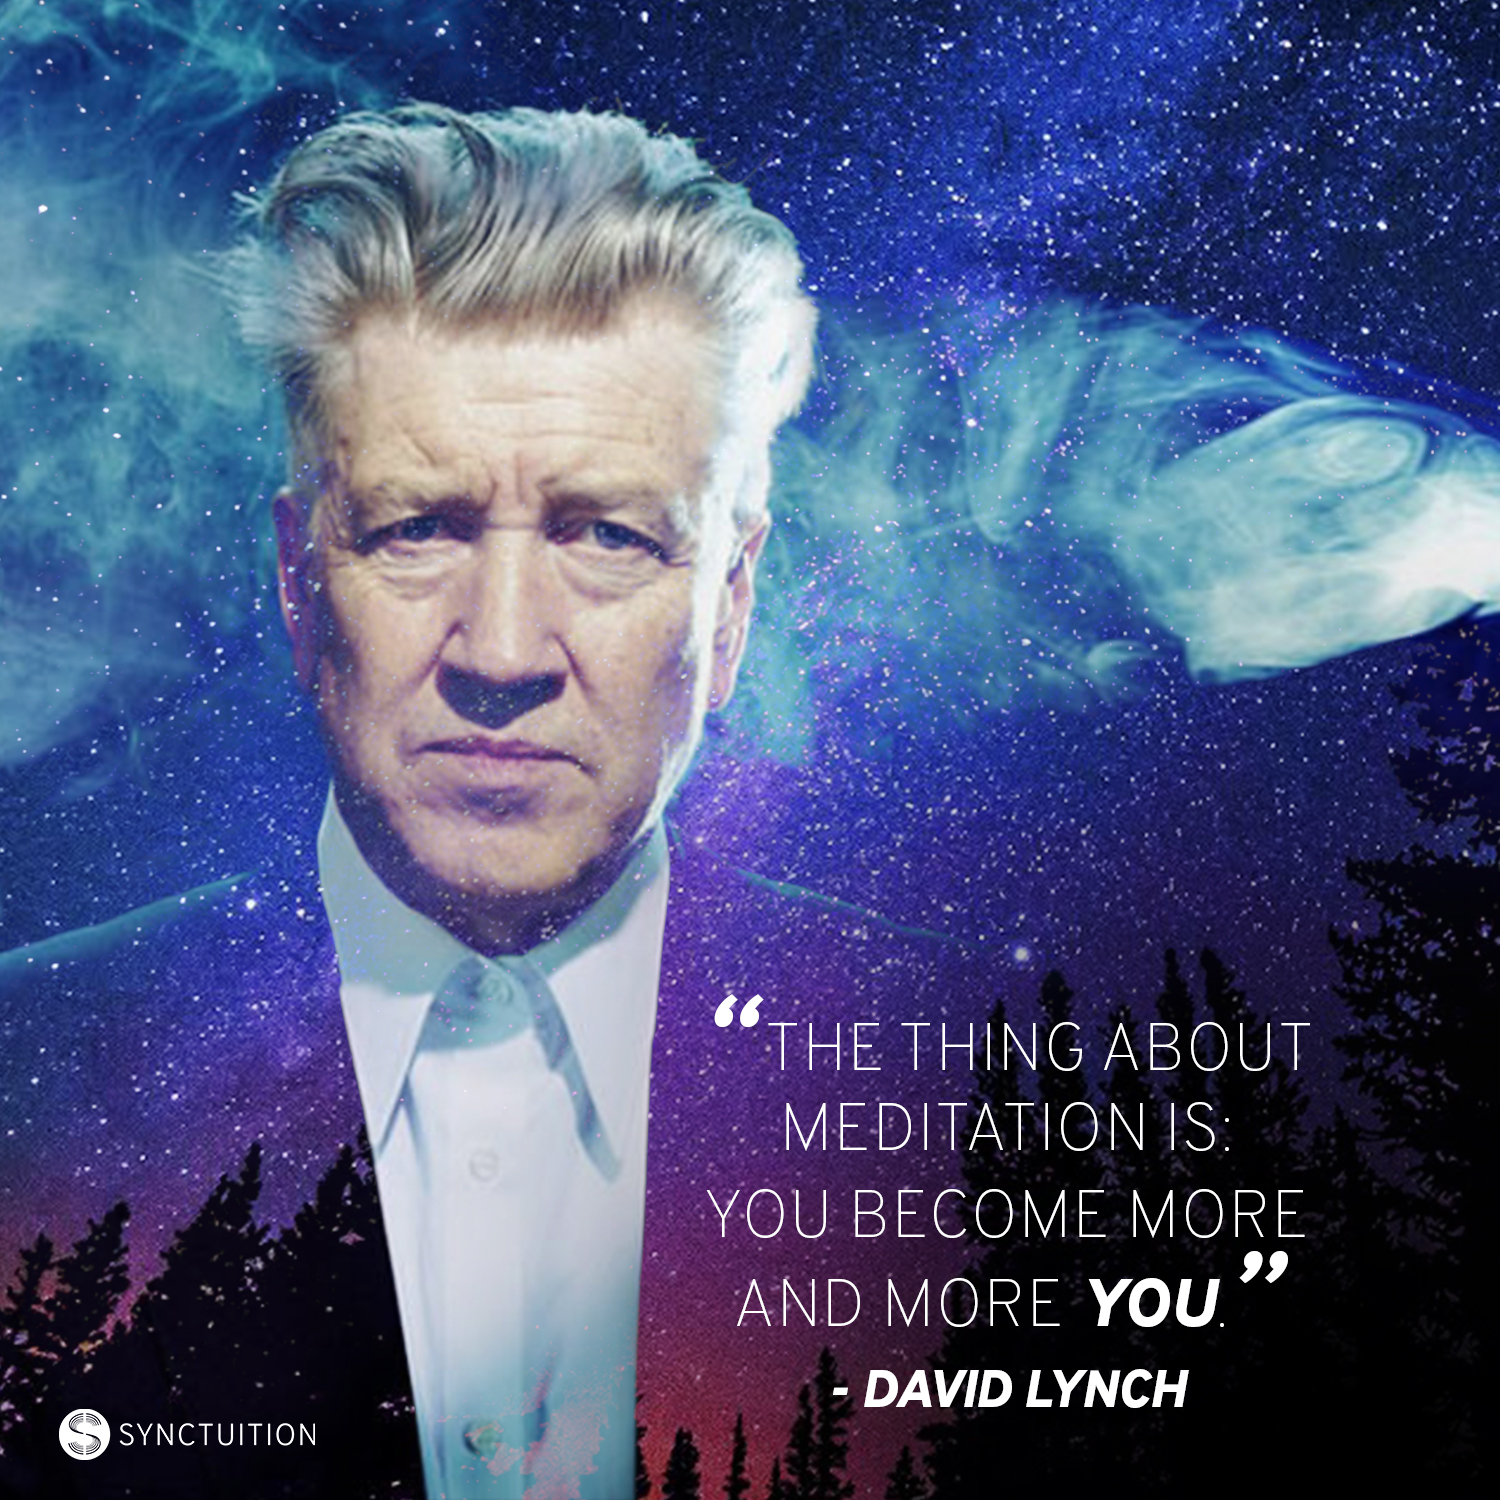 David Lynch quote: